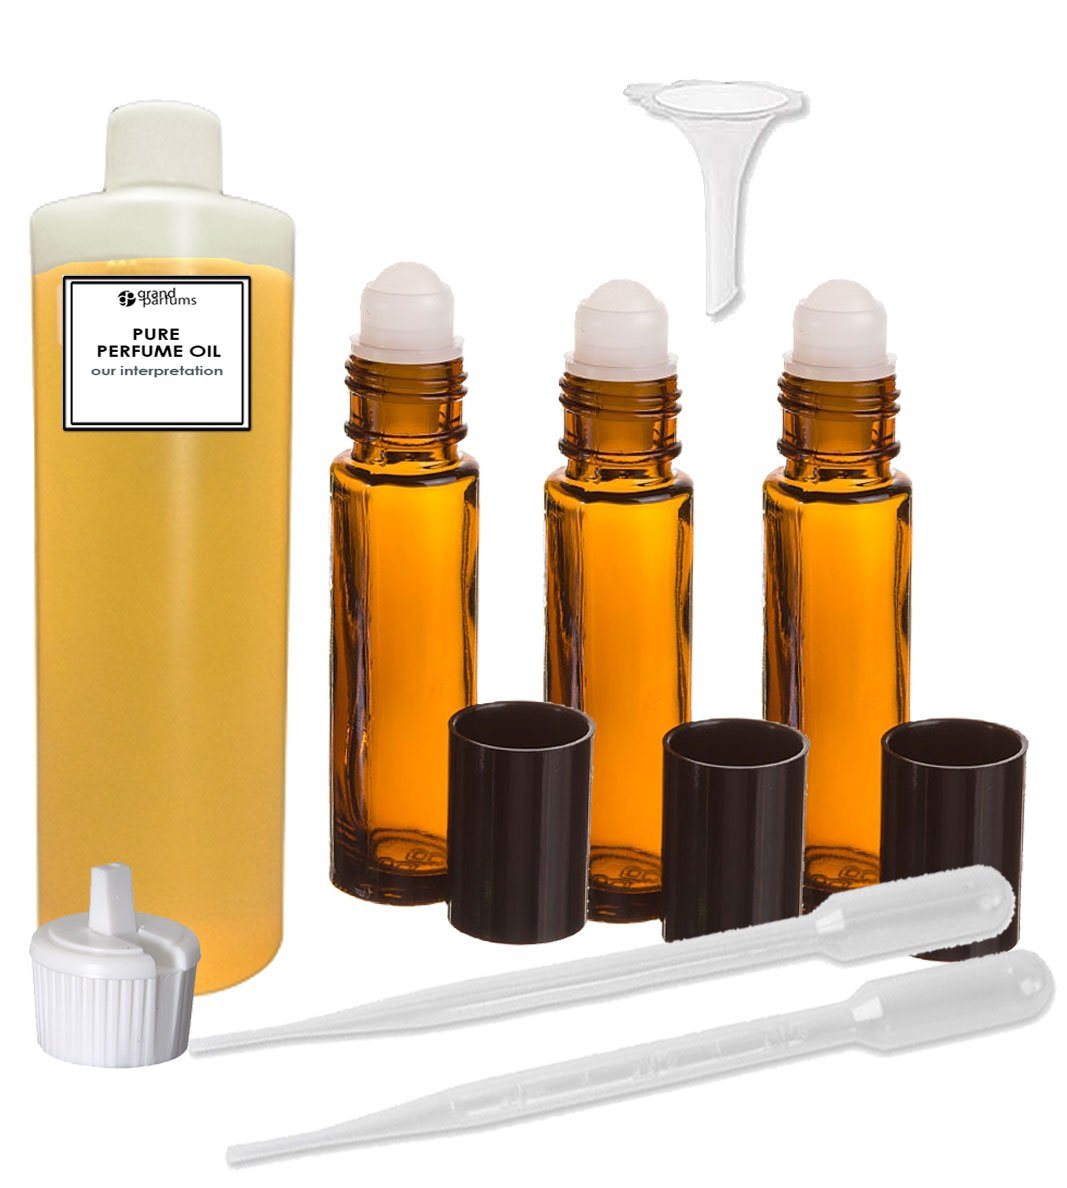 Grand Parfums Perfume Oil Set - Michael Kors Body Oil For Women Scented Fragrance Oil - Our Interpretation, with Roll On Bottles and Tools to Fill Them (2 Oz)